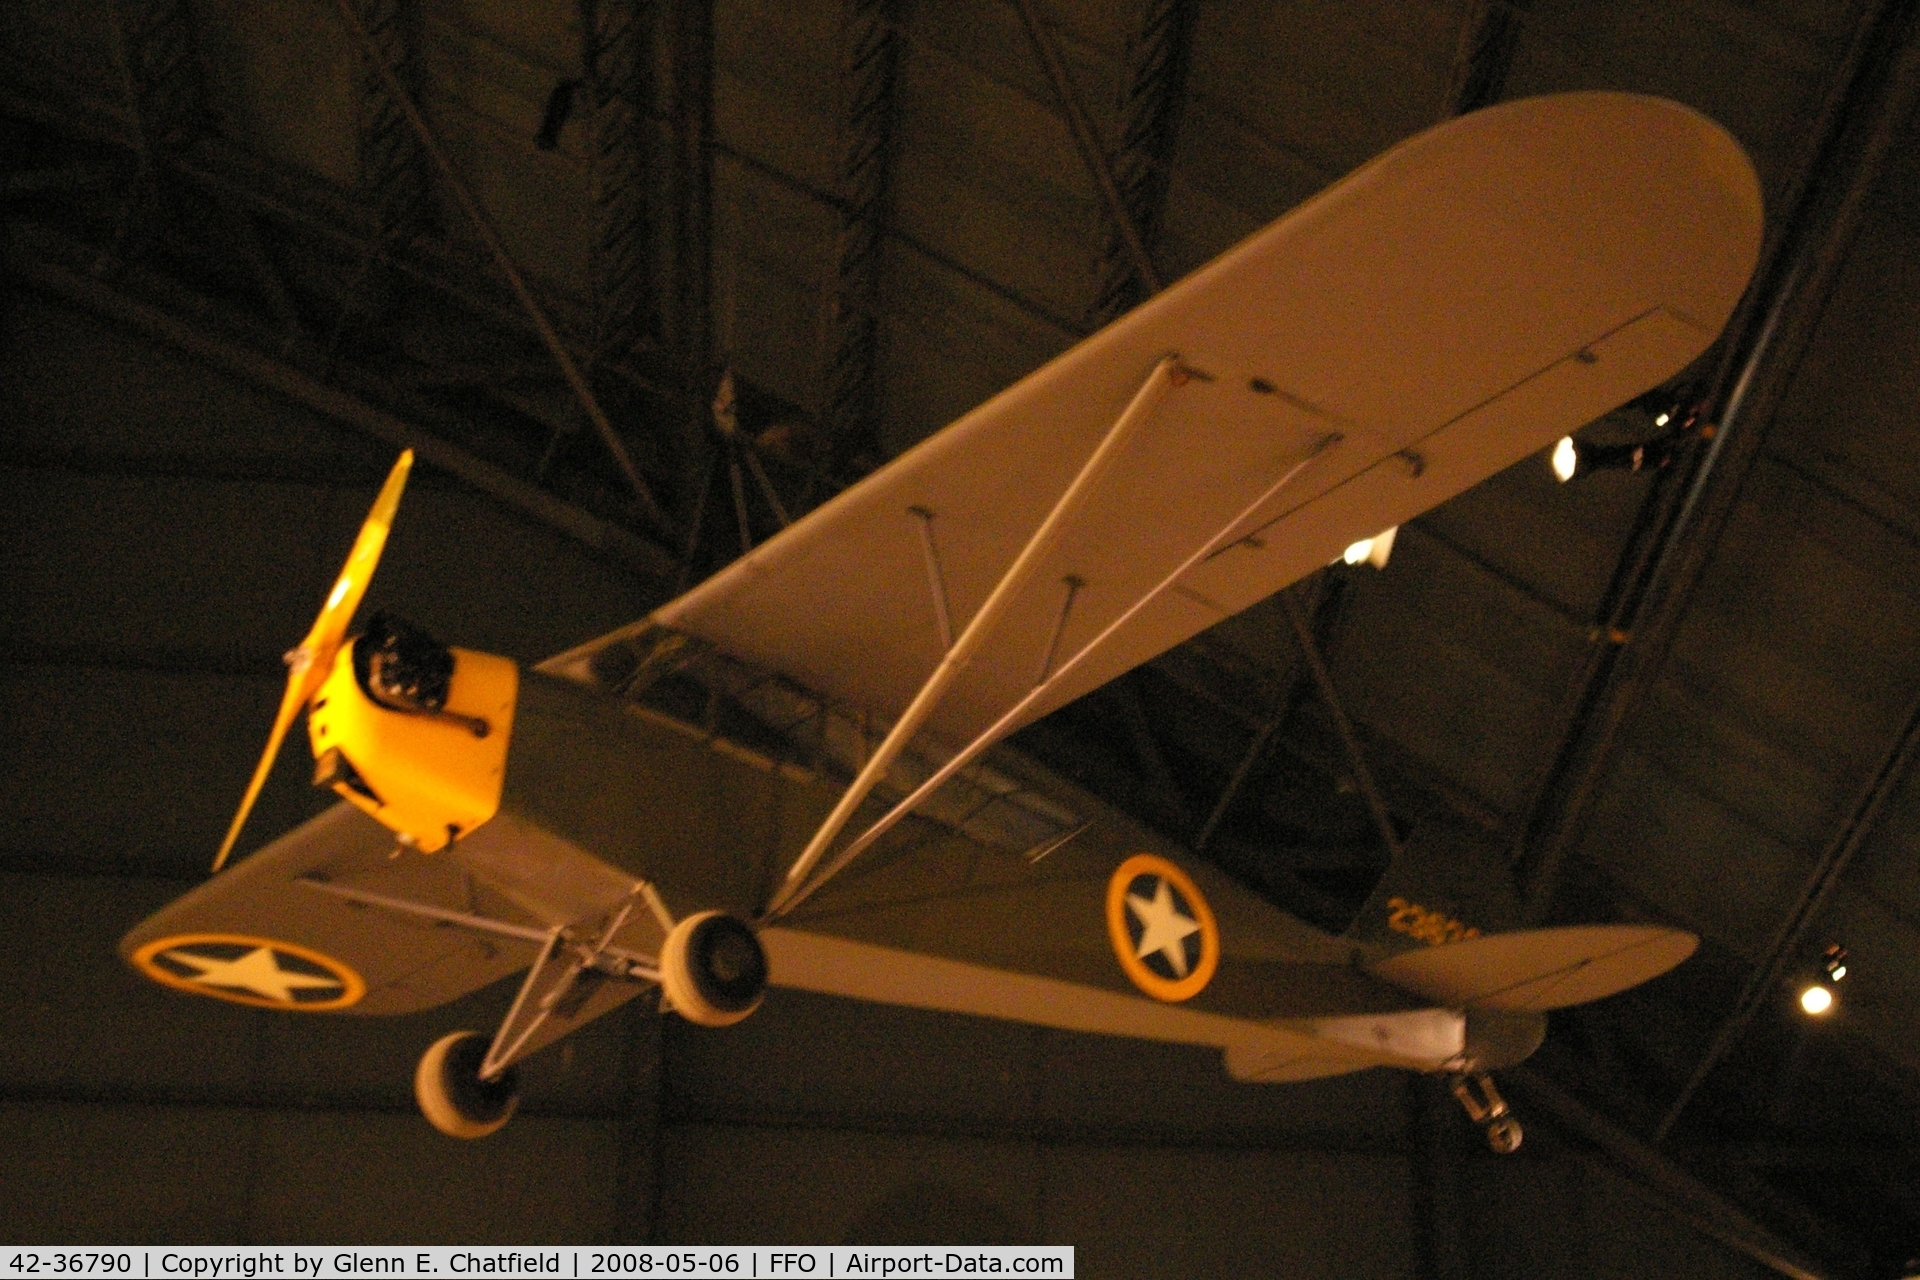 42-36790, Piper L-4A Grasshopper (O-59A / J3C-65) C/N 8914, Hanging from the ceiling in the National Museum of the U.S. Air Force